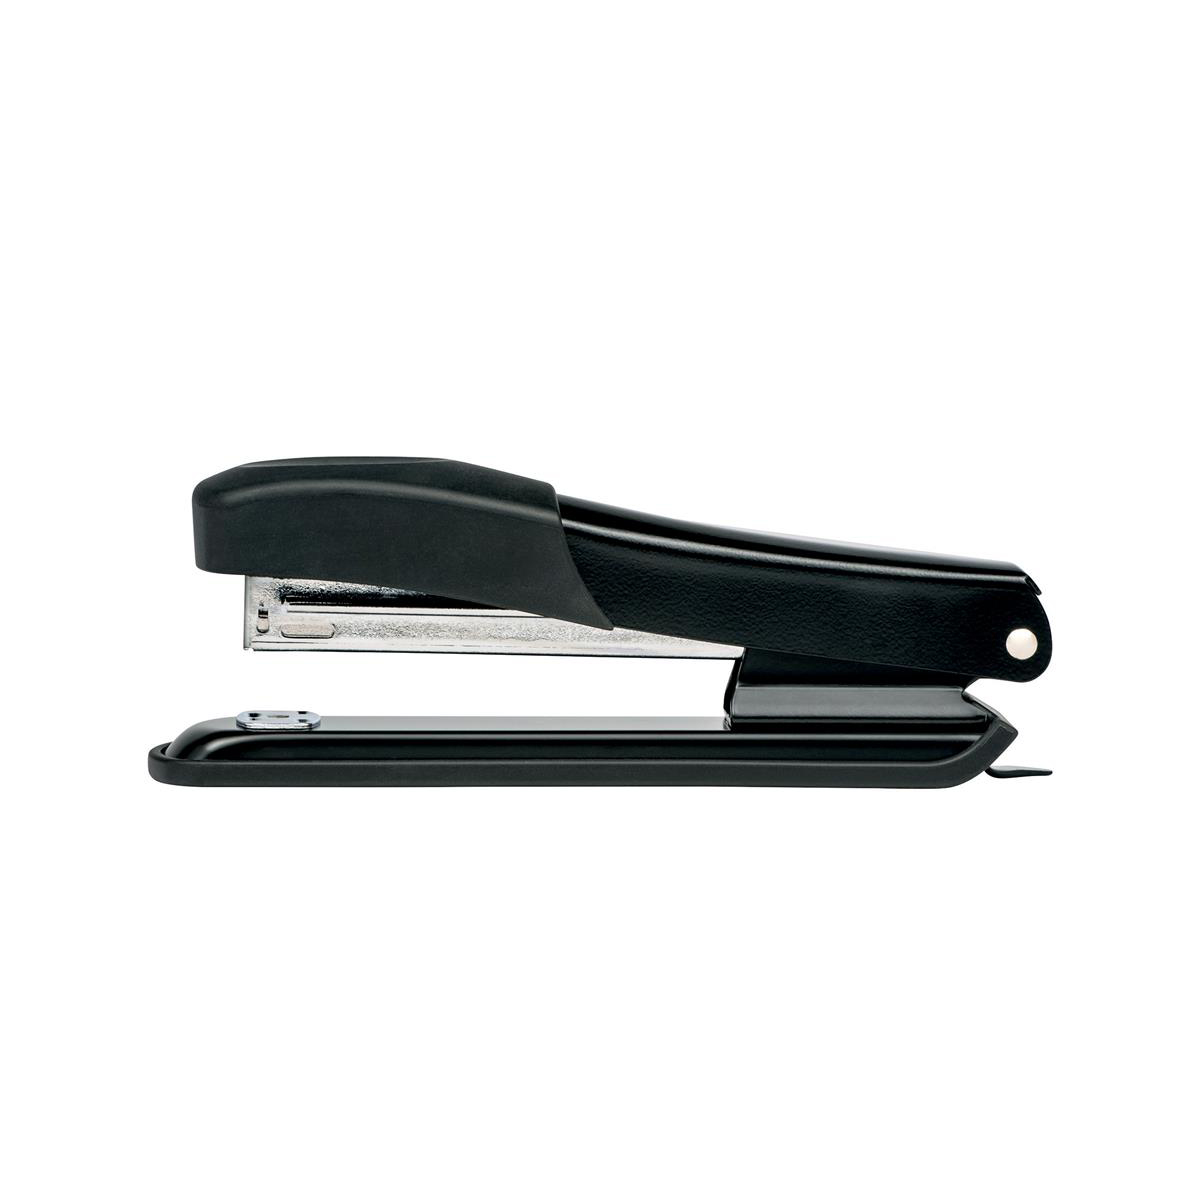 Long Arm Staplers 5 Star Office Metal Full Strip Stapler 20 Sheet Capacity Takes 26/6 Staples Black